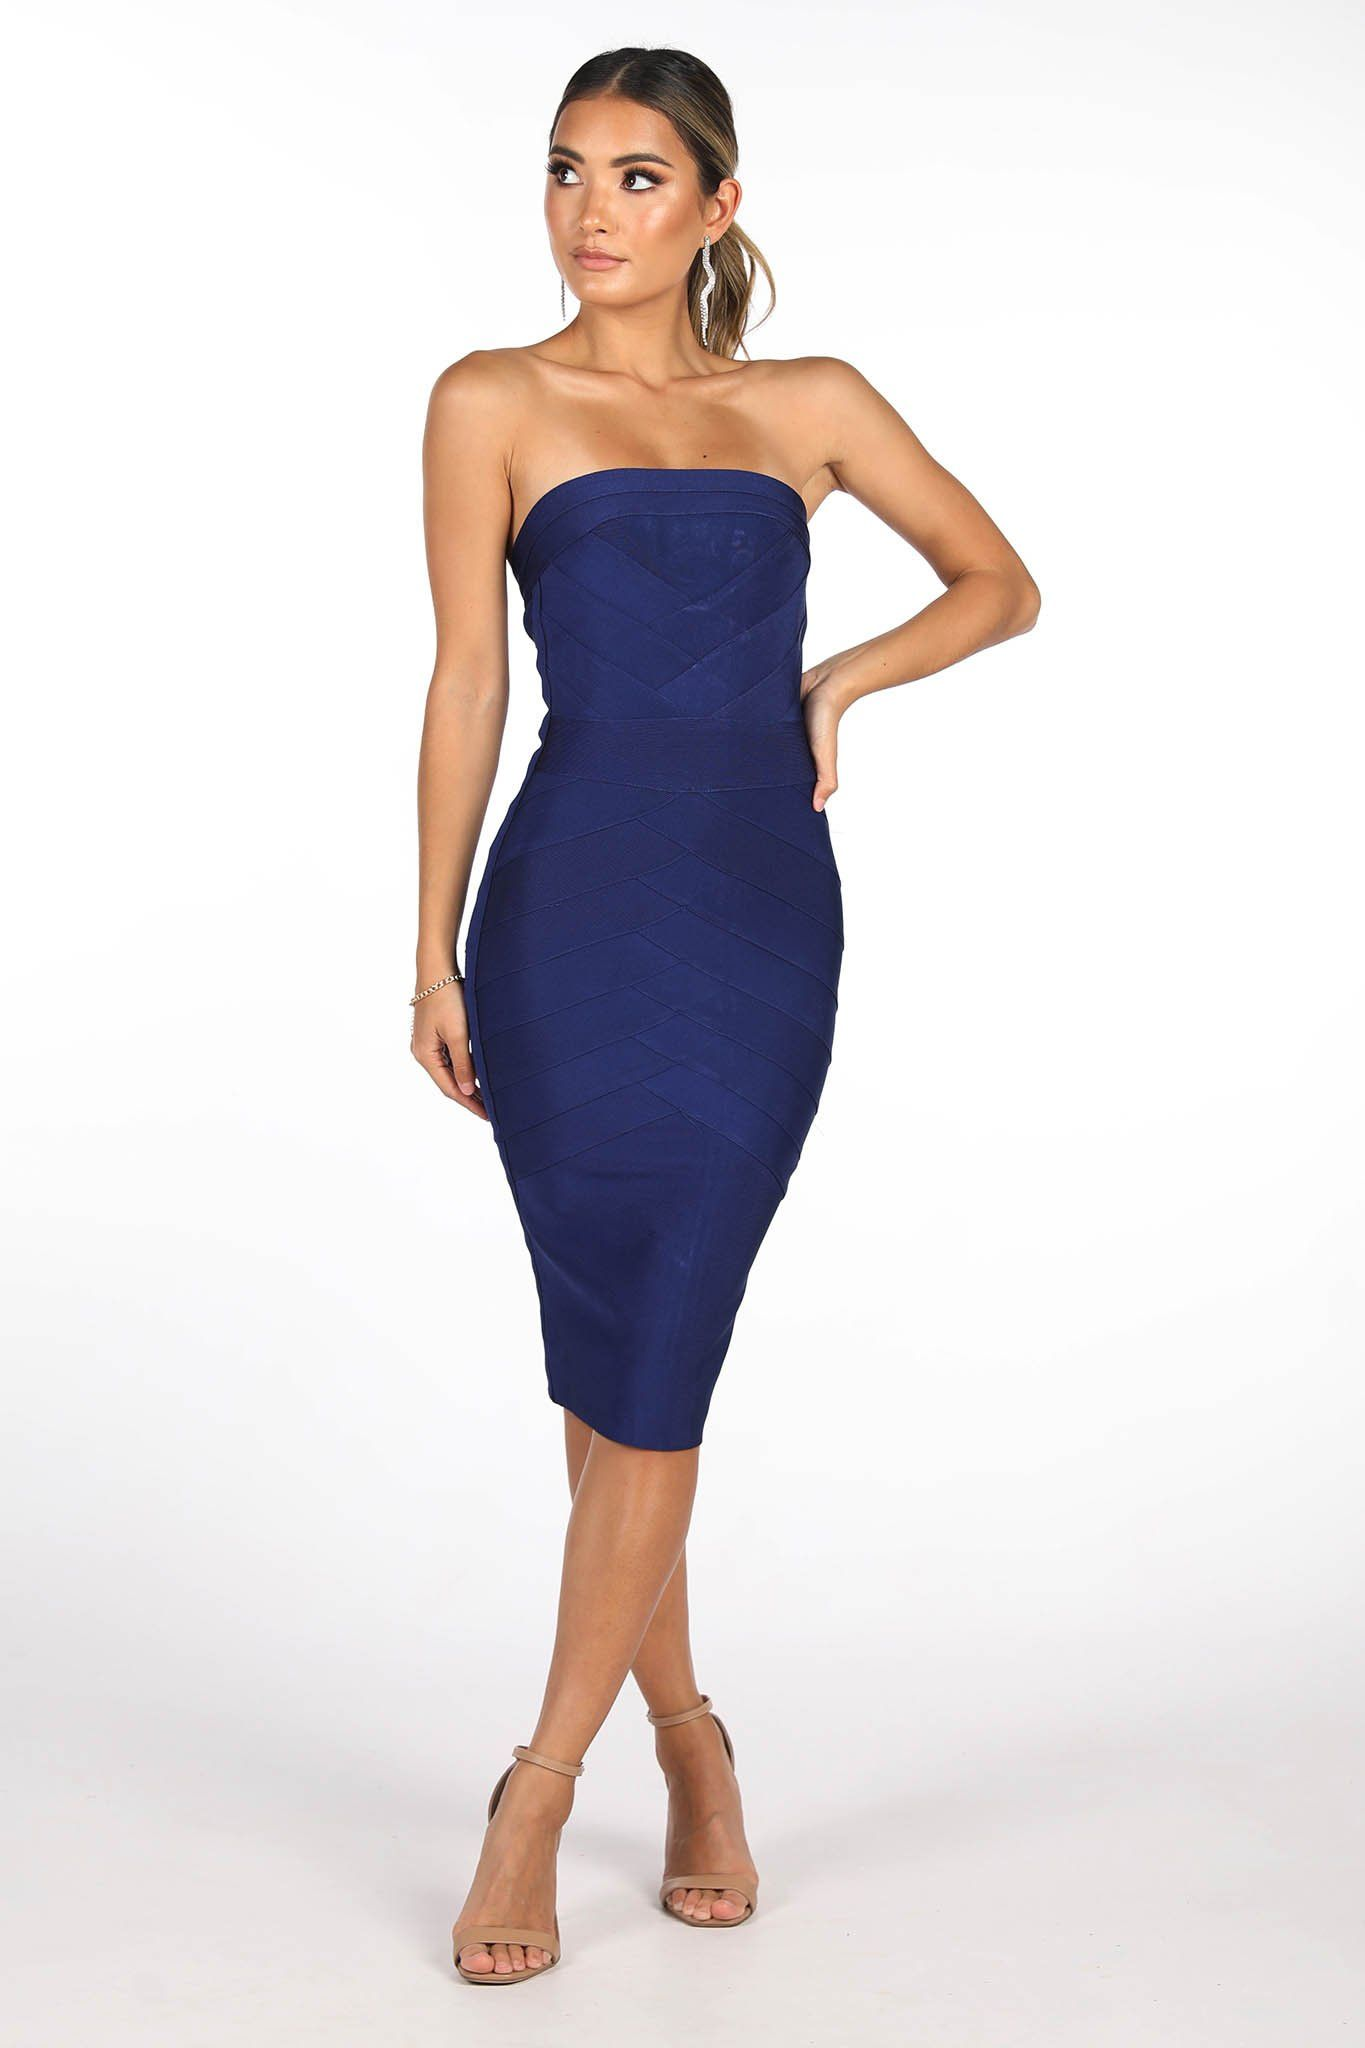 Deep Navy Blue Fitted Midi Bandage Dress in Square Straight Neckline Design and Full Back Zipper